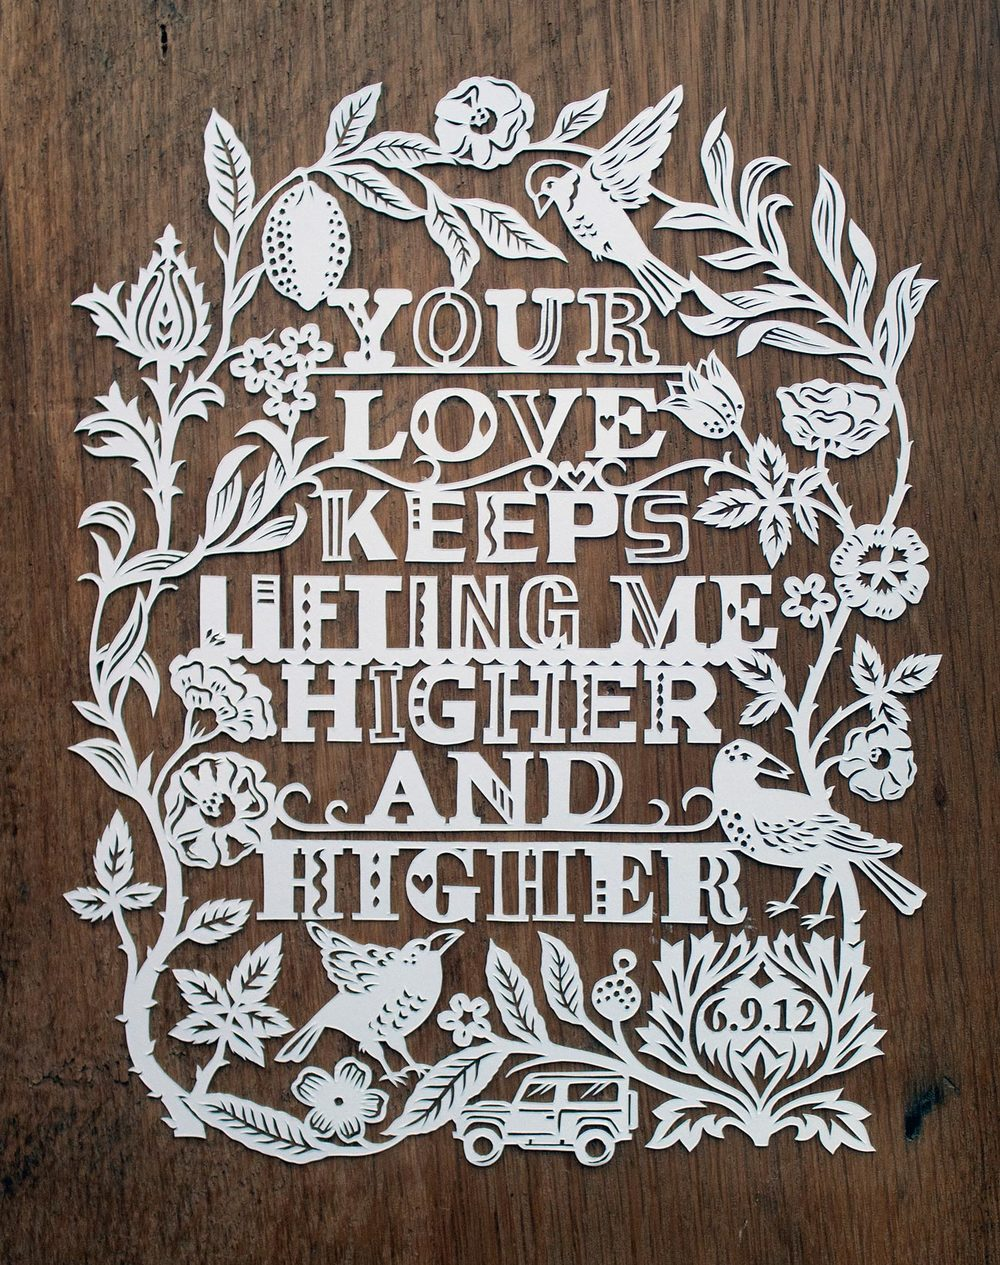 papercut illustration for first anniversary, love and flowers